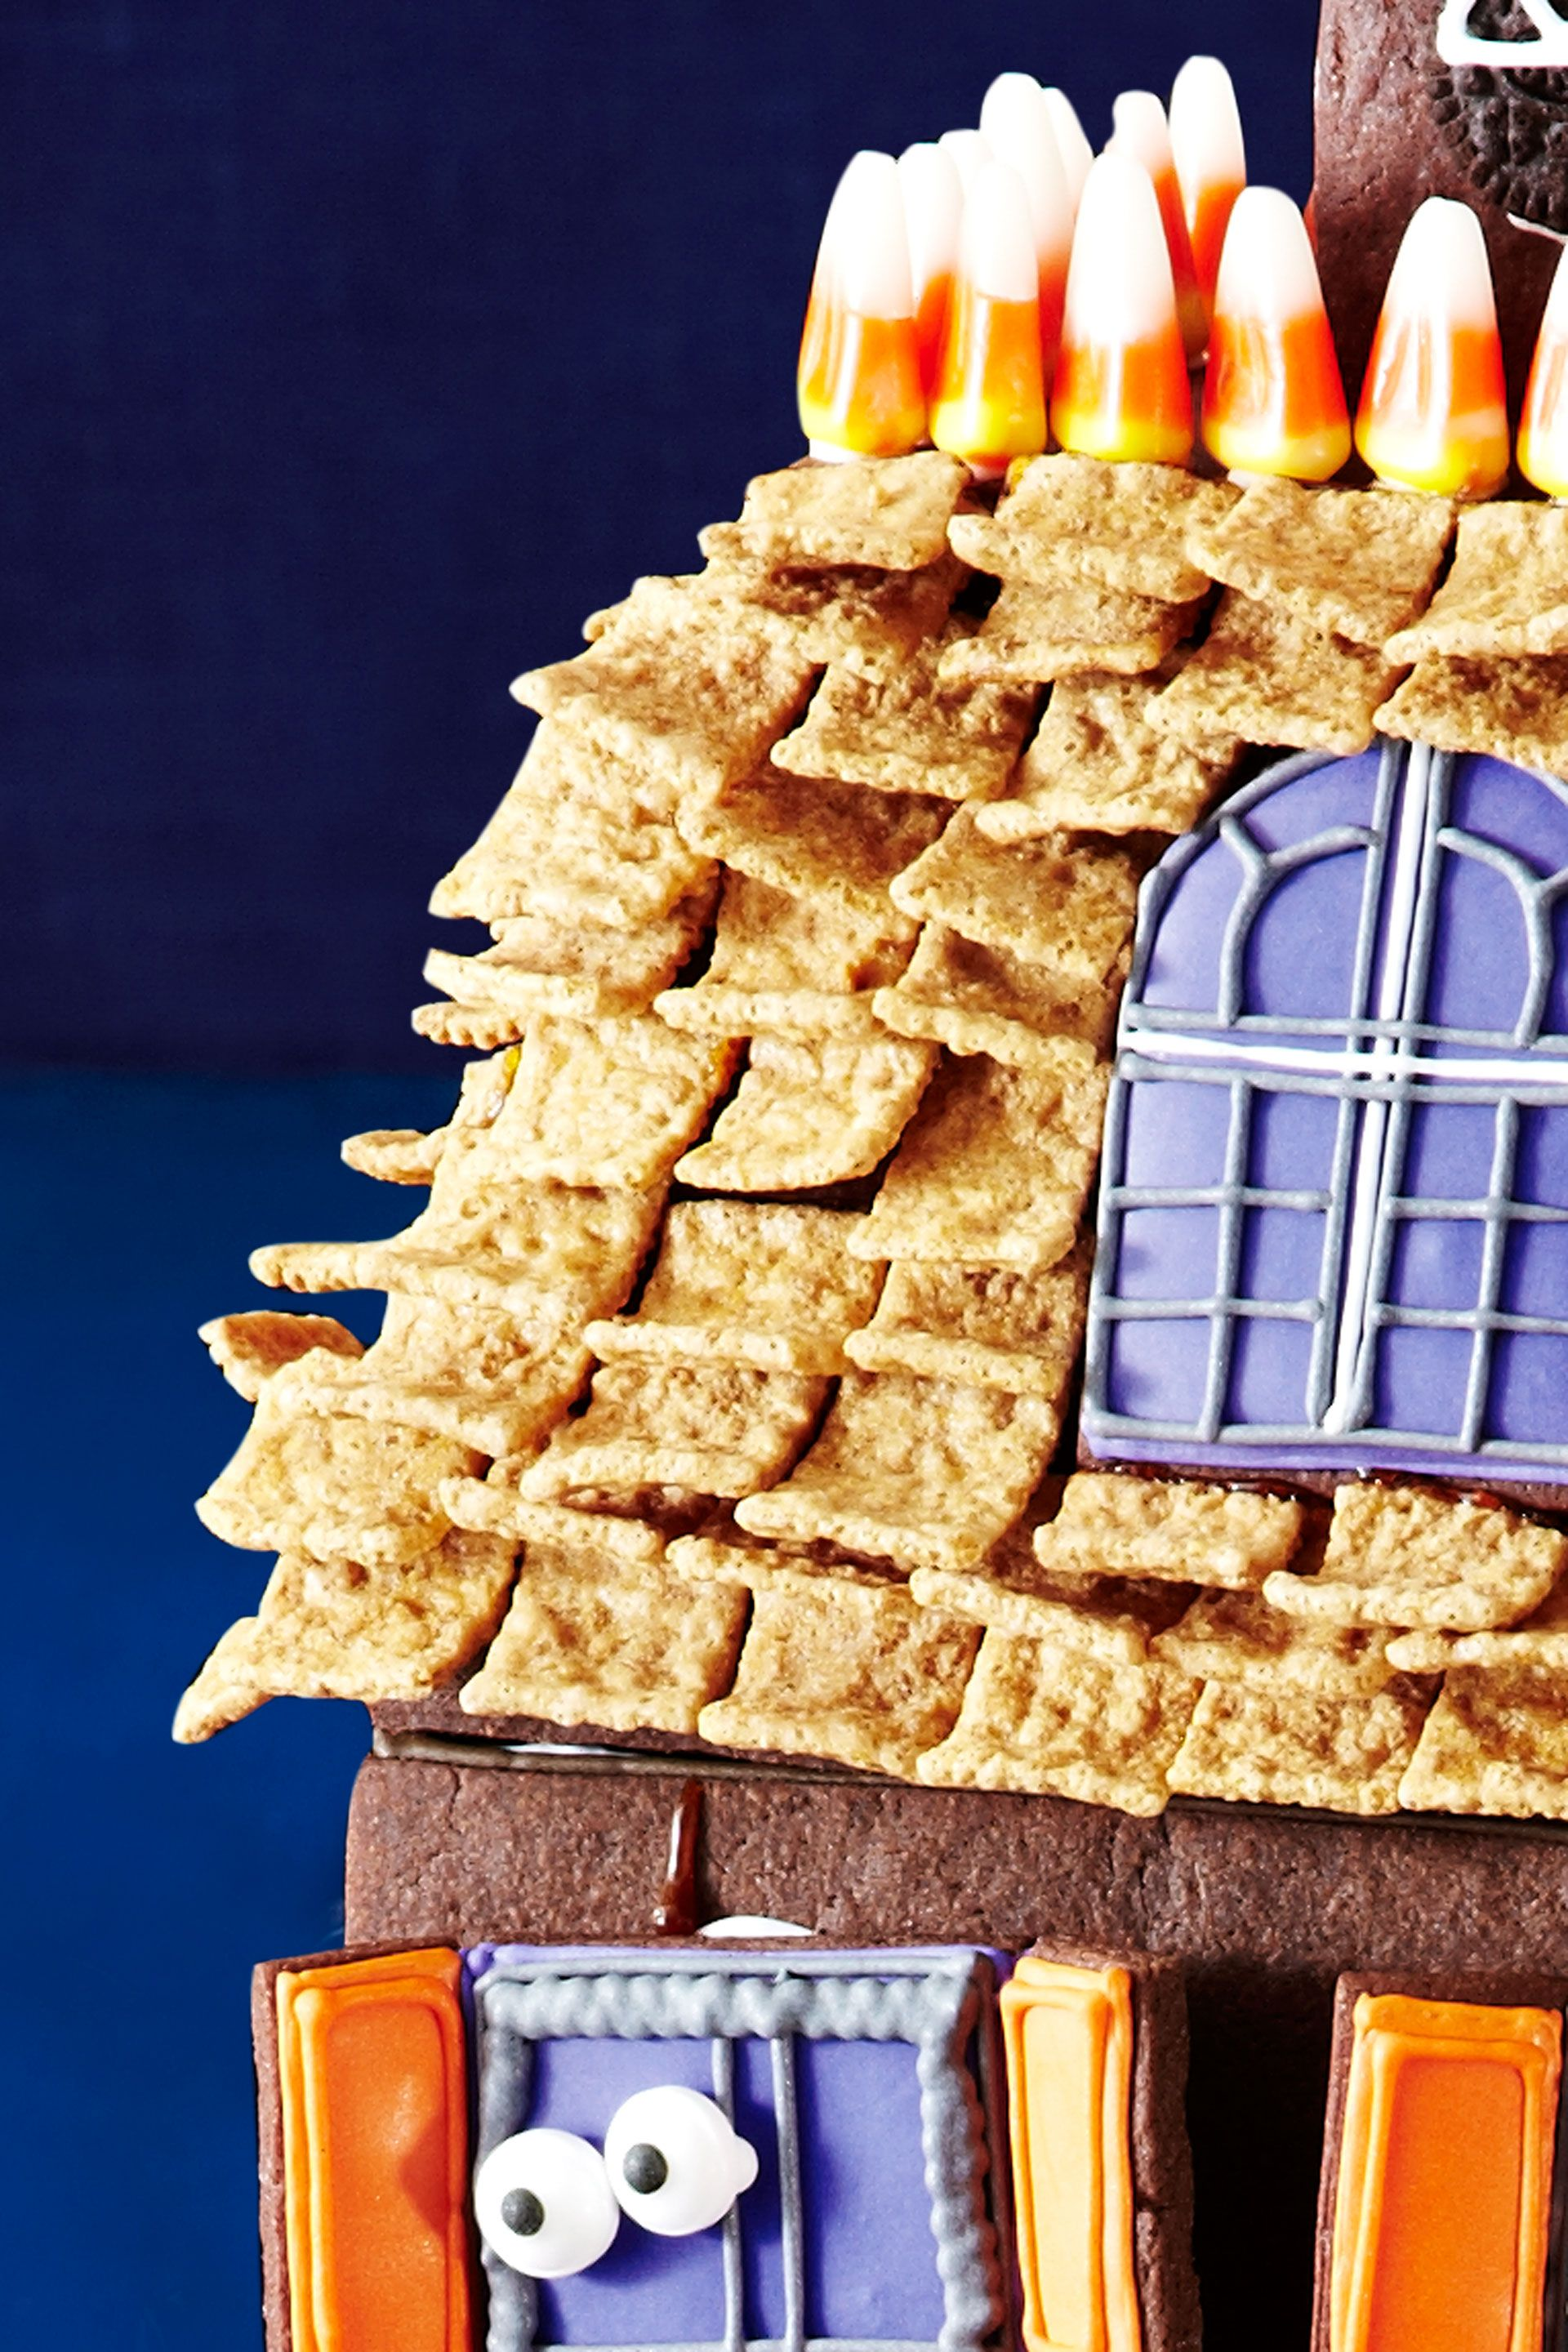 """<p>Starting with the top row, stick Golden Graham Cereal shingles on the roof using melted hard caramel.</p> <p><a href=""""http://www.womansday.com/food-recipes/holiday-recipes/halloween-haunted-house"""" target=""""_self"""">Watch this video to see how to attach the shingles.</a></p>"""